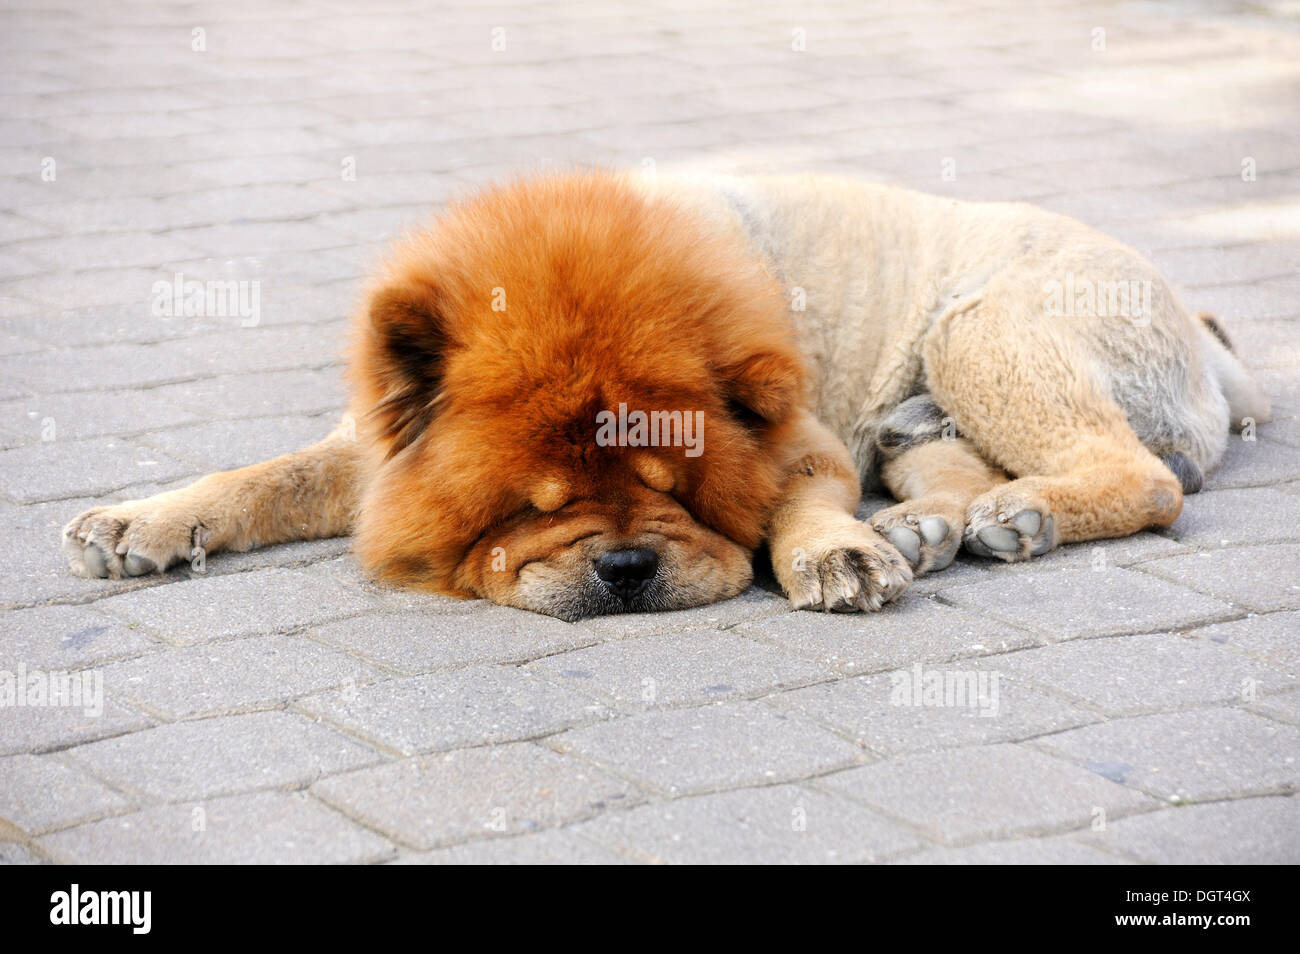 Clipped Chow-Chow sleeping on a pavement, in hot weather - Stock Image